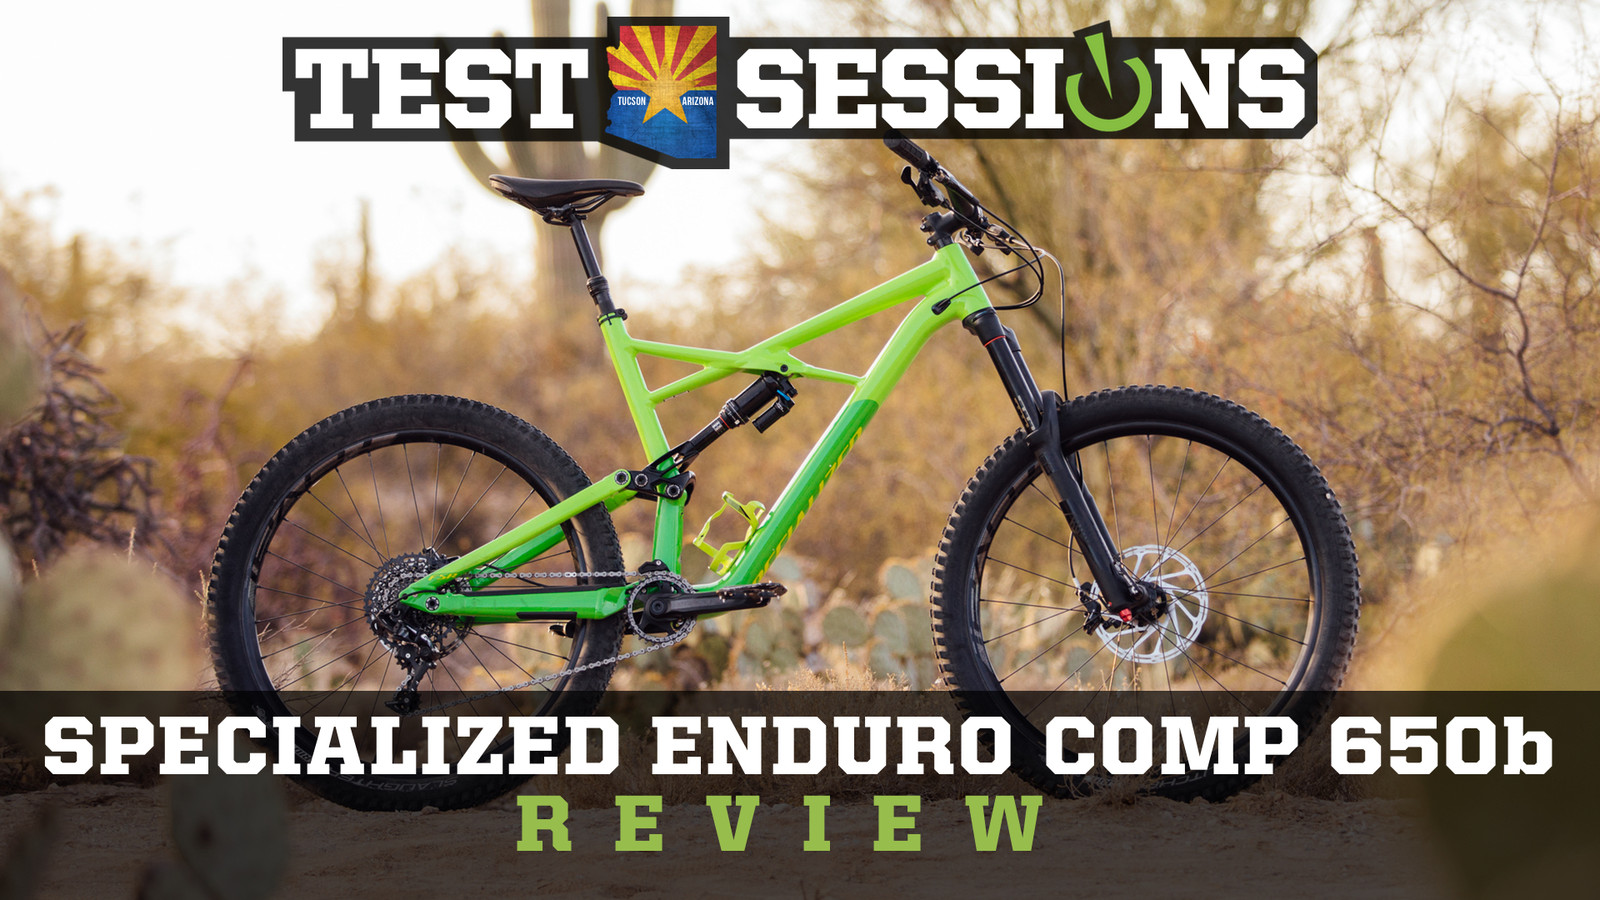 Review - 2017 Specialized Enduro 650b from Vital MTB Test Sessions